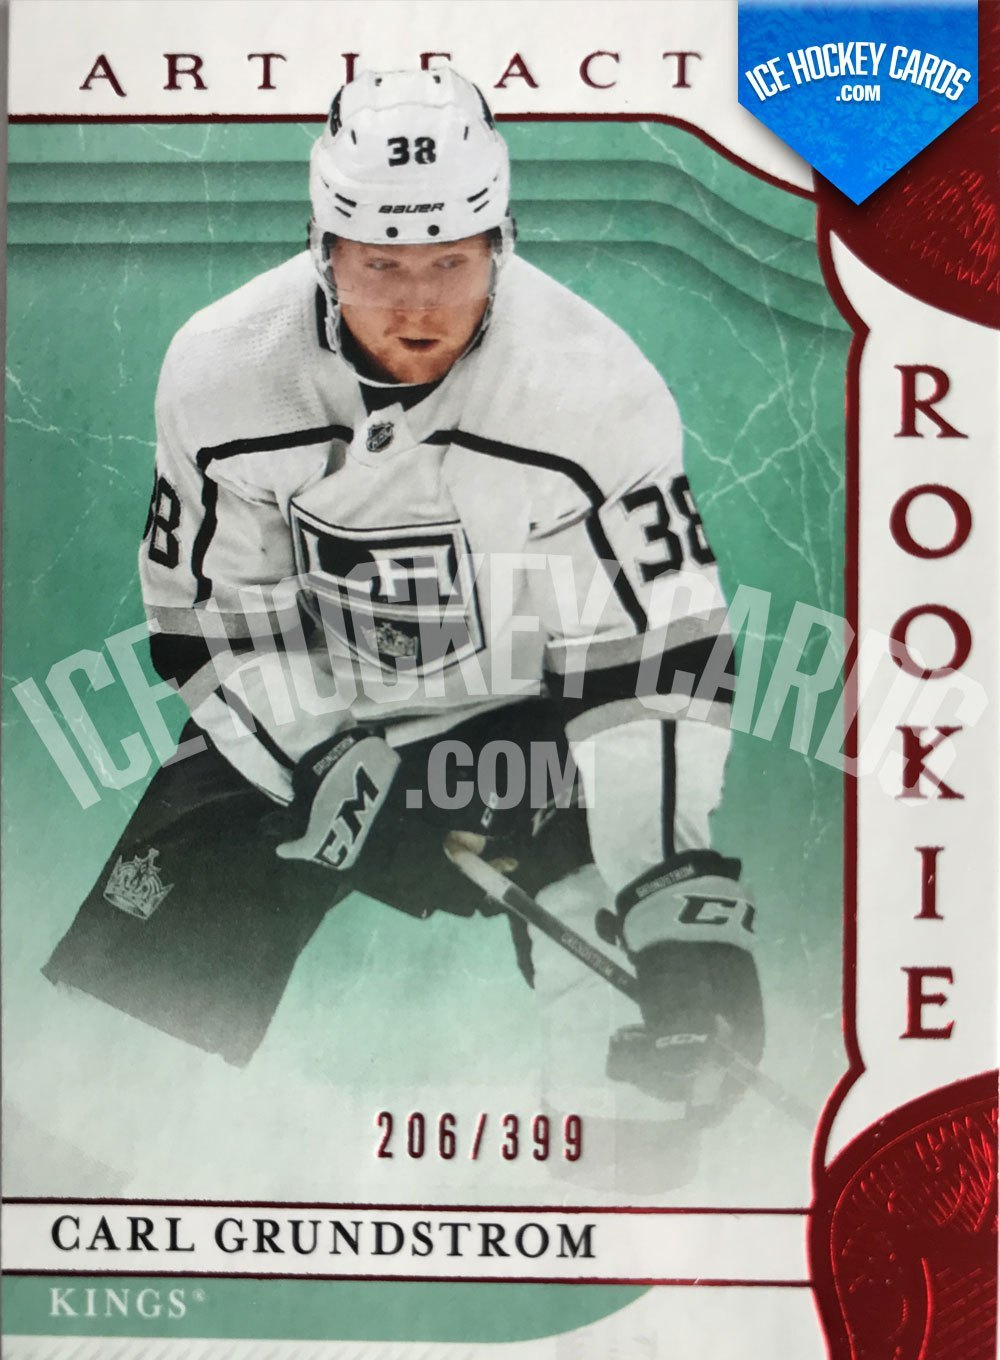 Upper Deck - Artifacts 19-20 - Carl Grundstrom Rookie Ruby Parallel Card